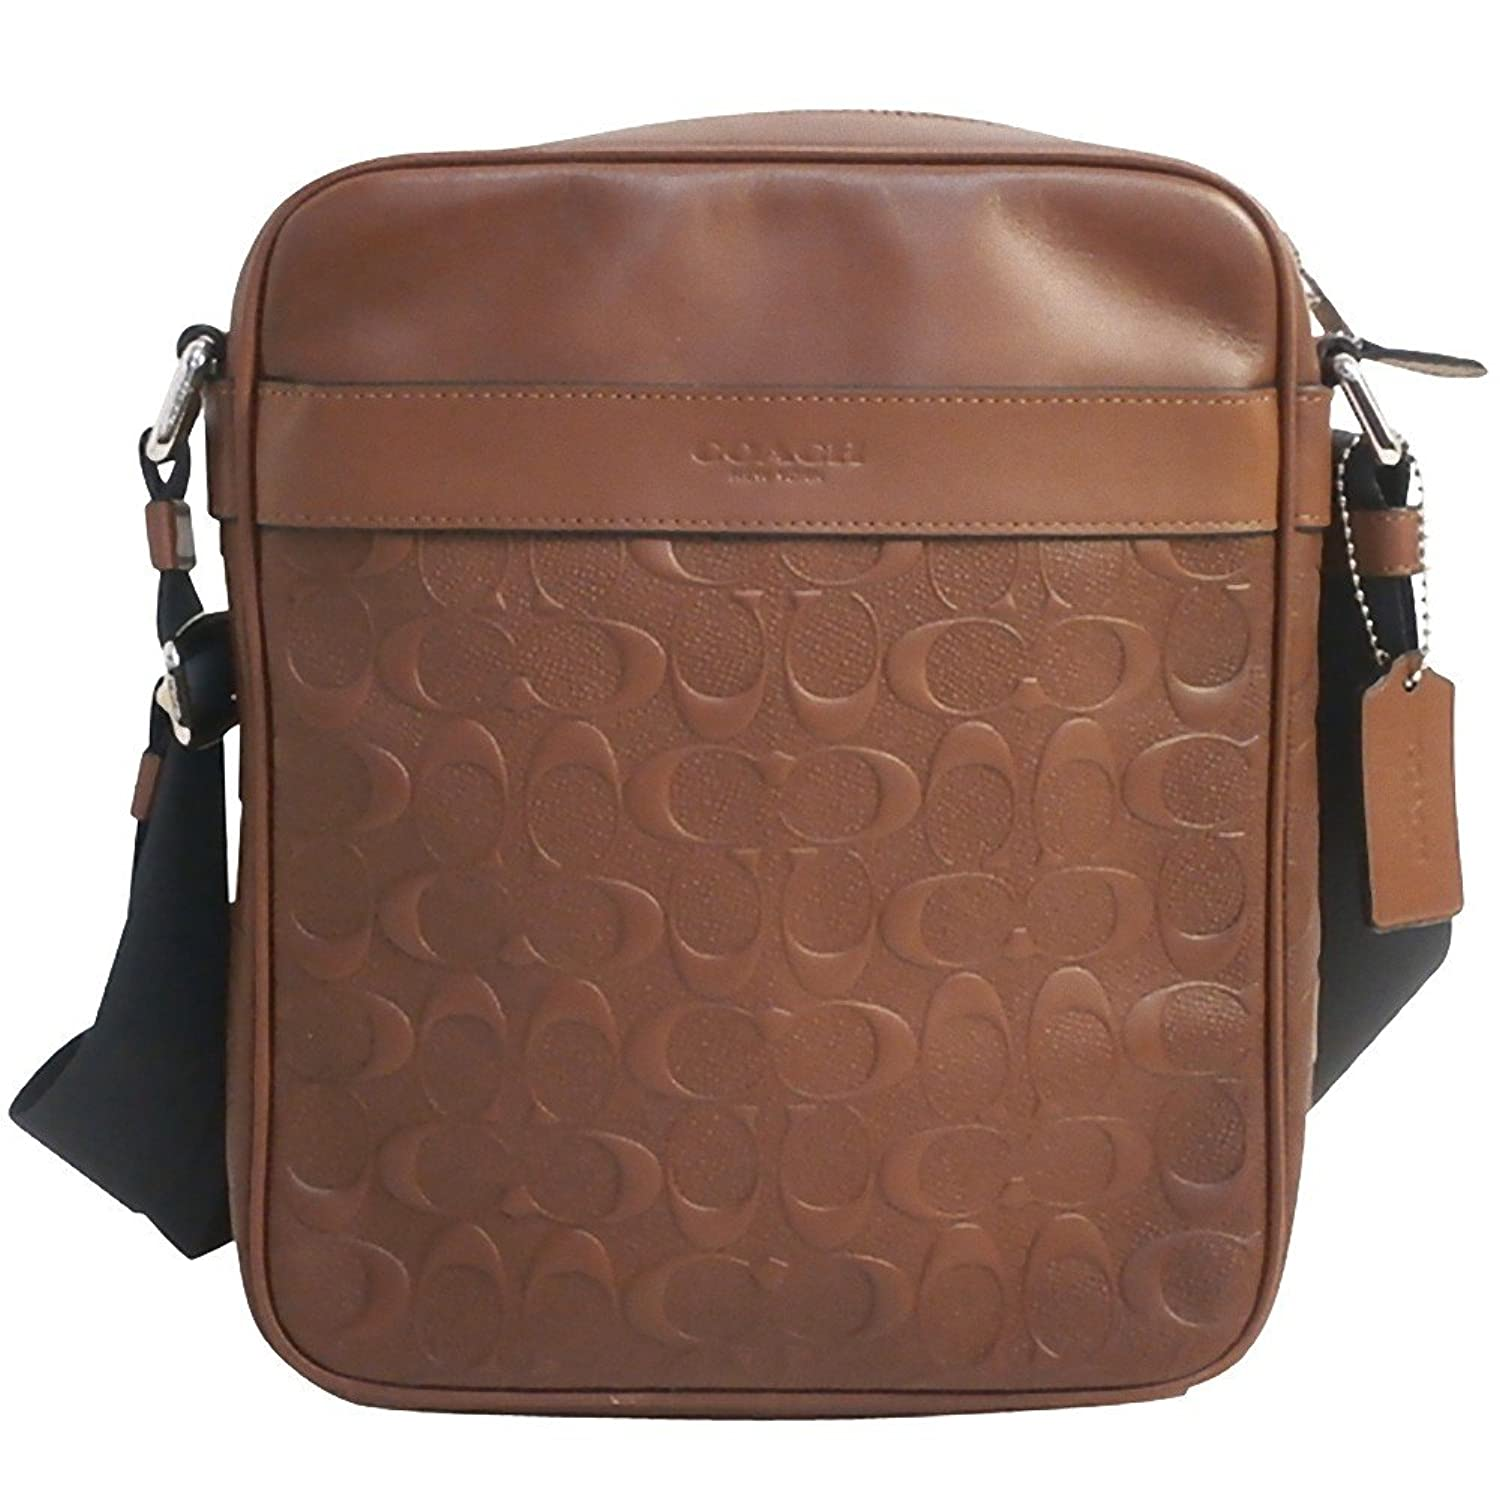 03ef85d58b00 ... promo code for coach charles flight bag in signature leather f24868  saddle acd81 6db58 ...